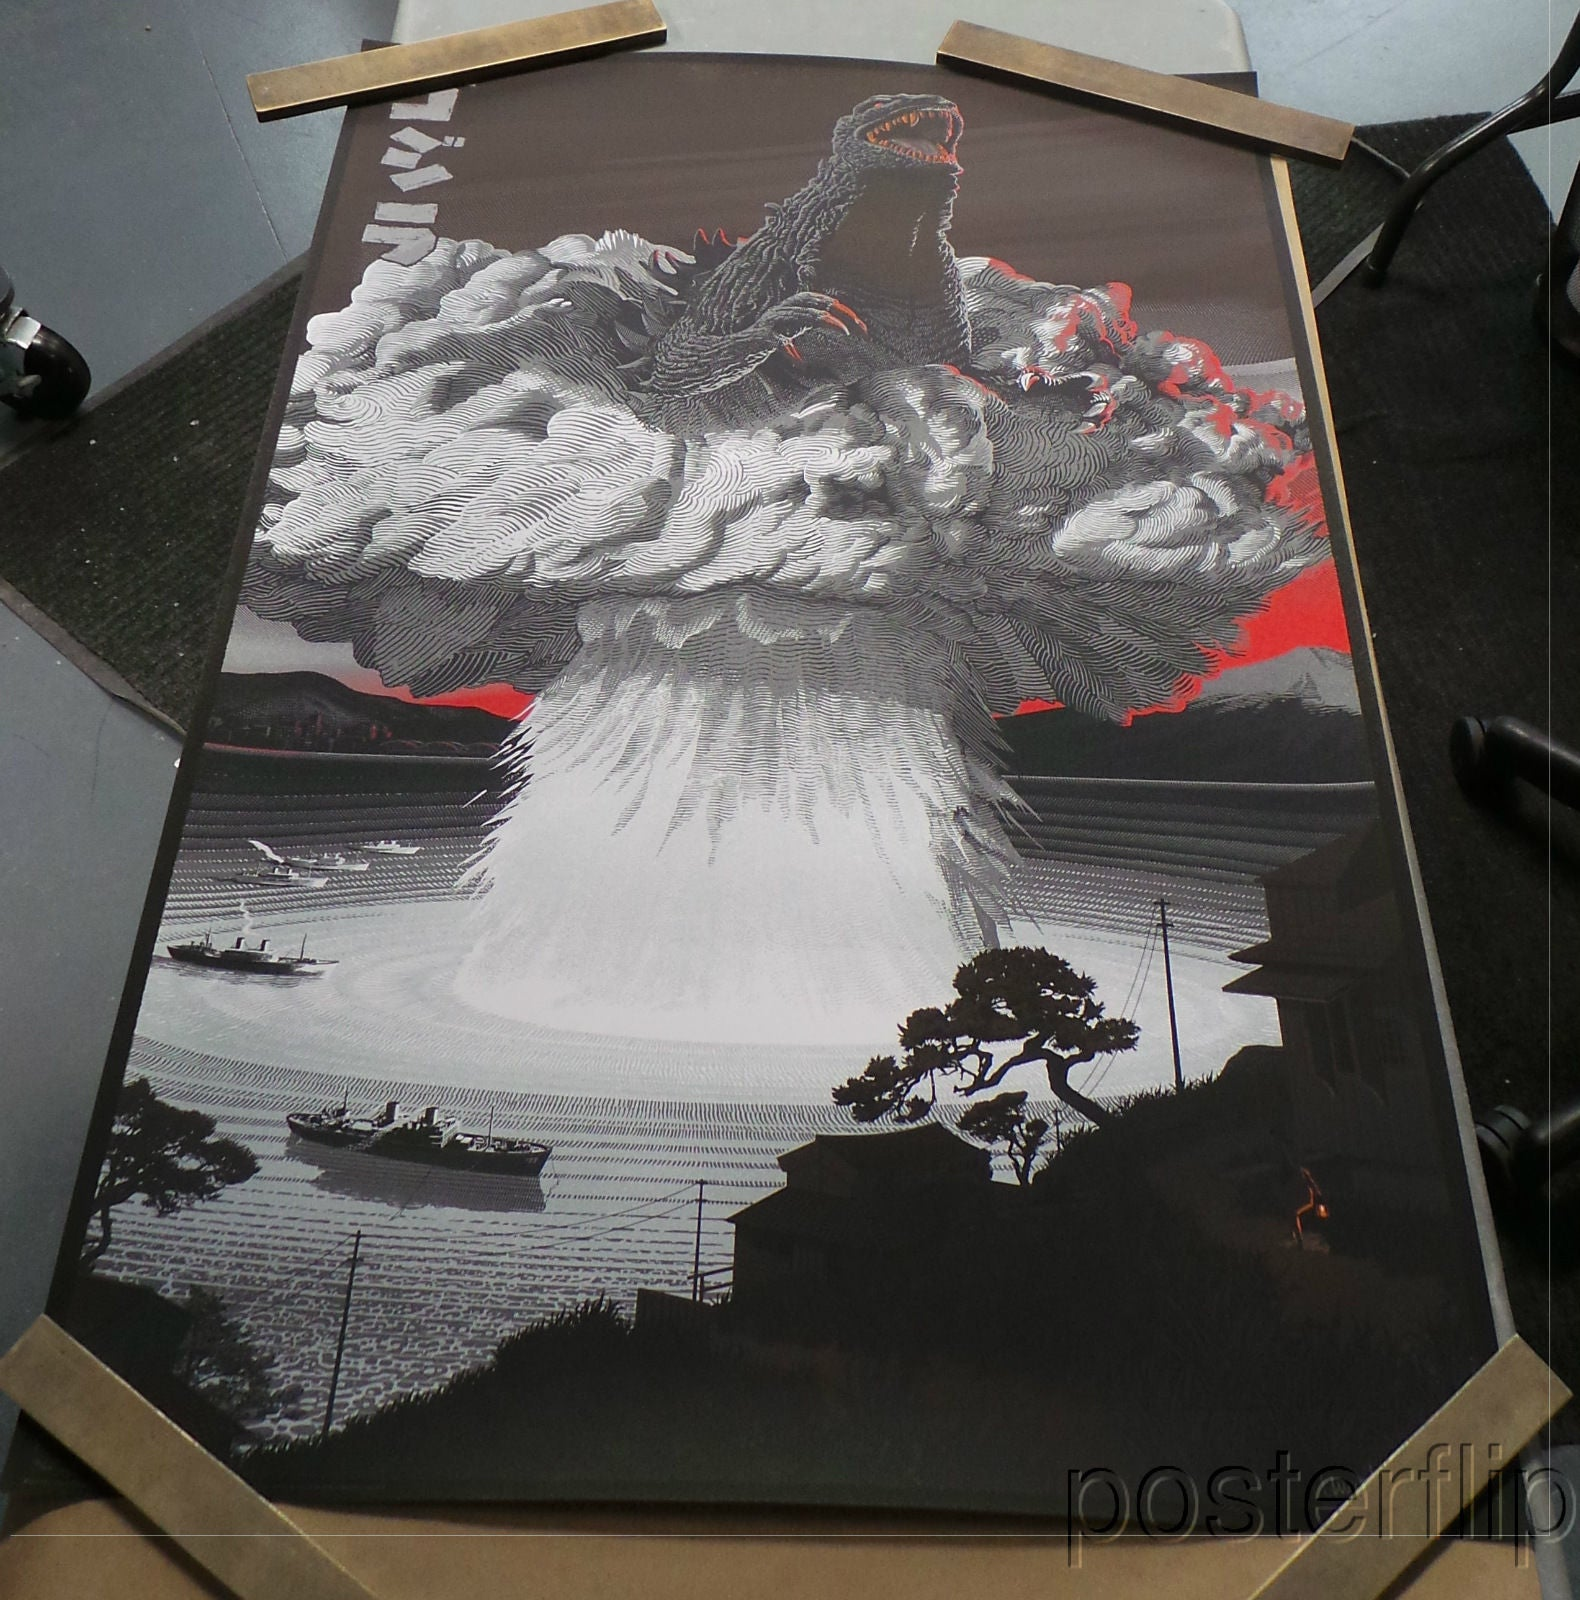 Godzilla Variant Screenprint Poster Limited Edition x/125 Signed/Numbered